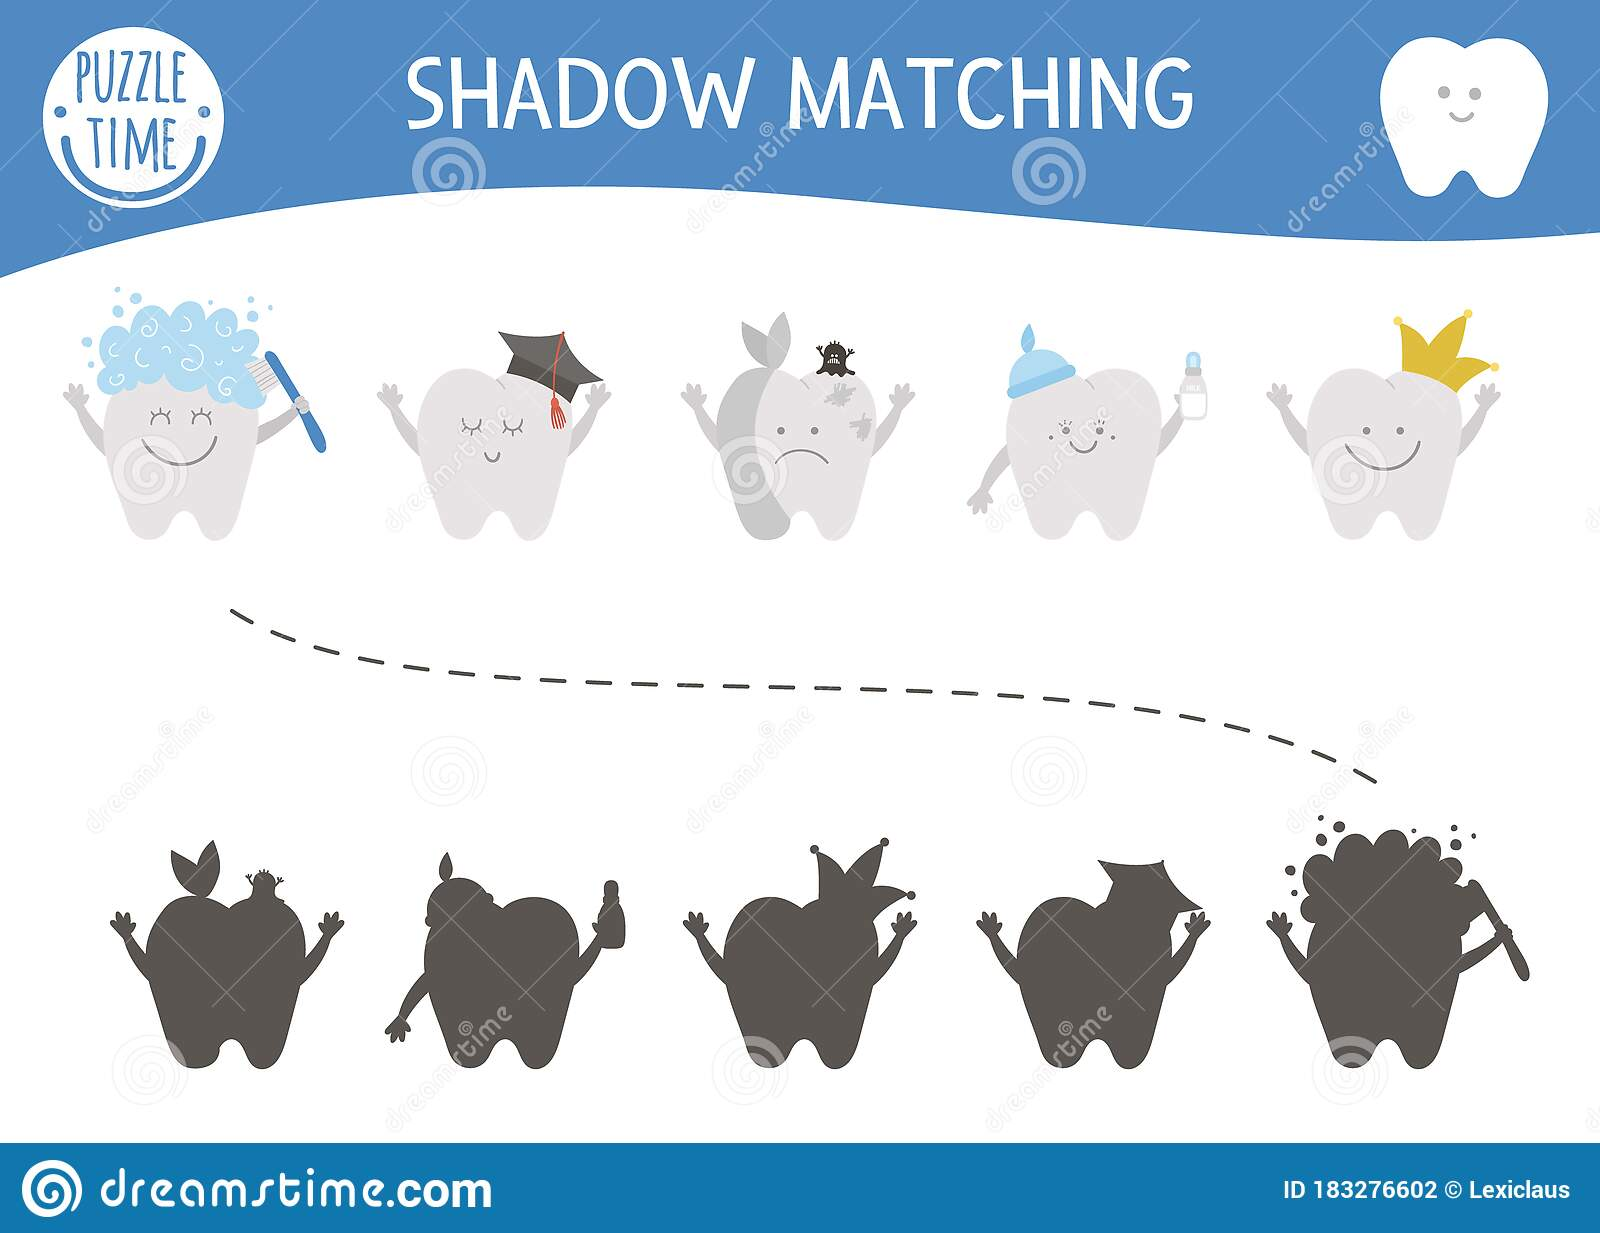 Dental Care Shadow Matching Activity For Children With